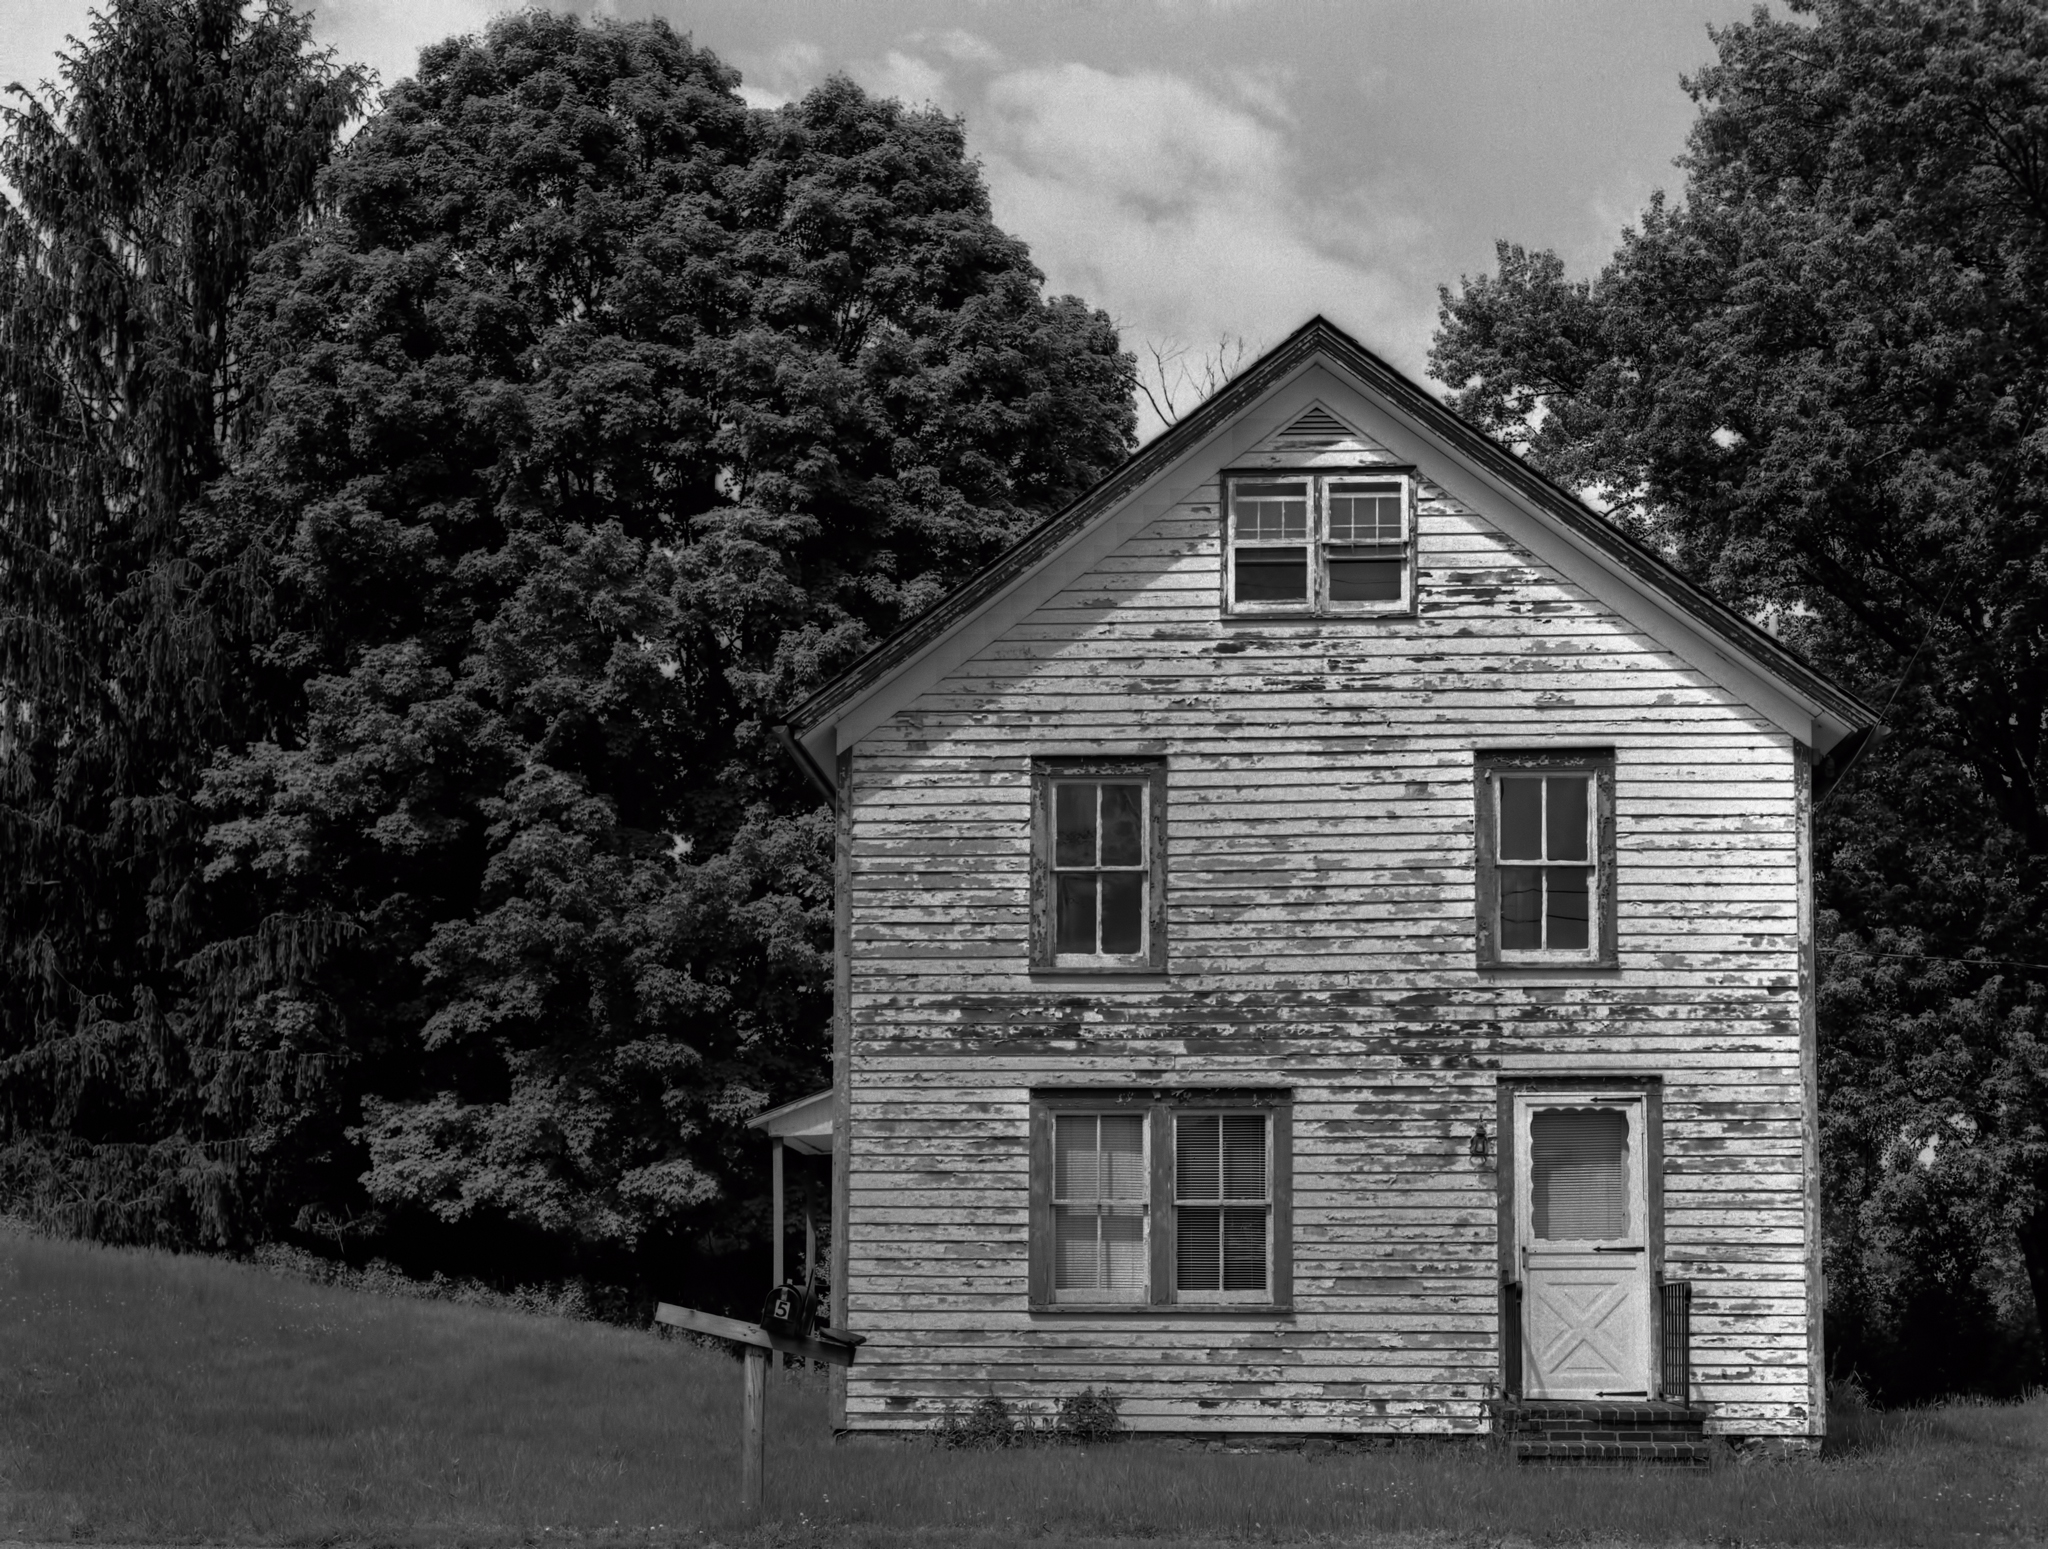 4x5_for_365_project_0159_Wallpack_Center_house.jpg